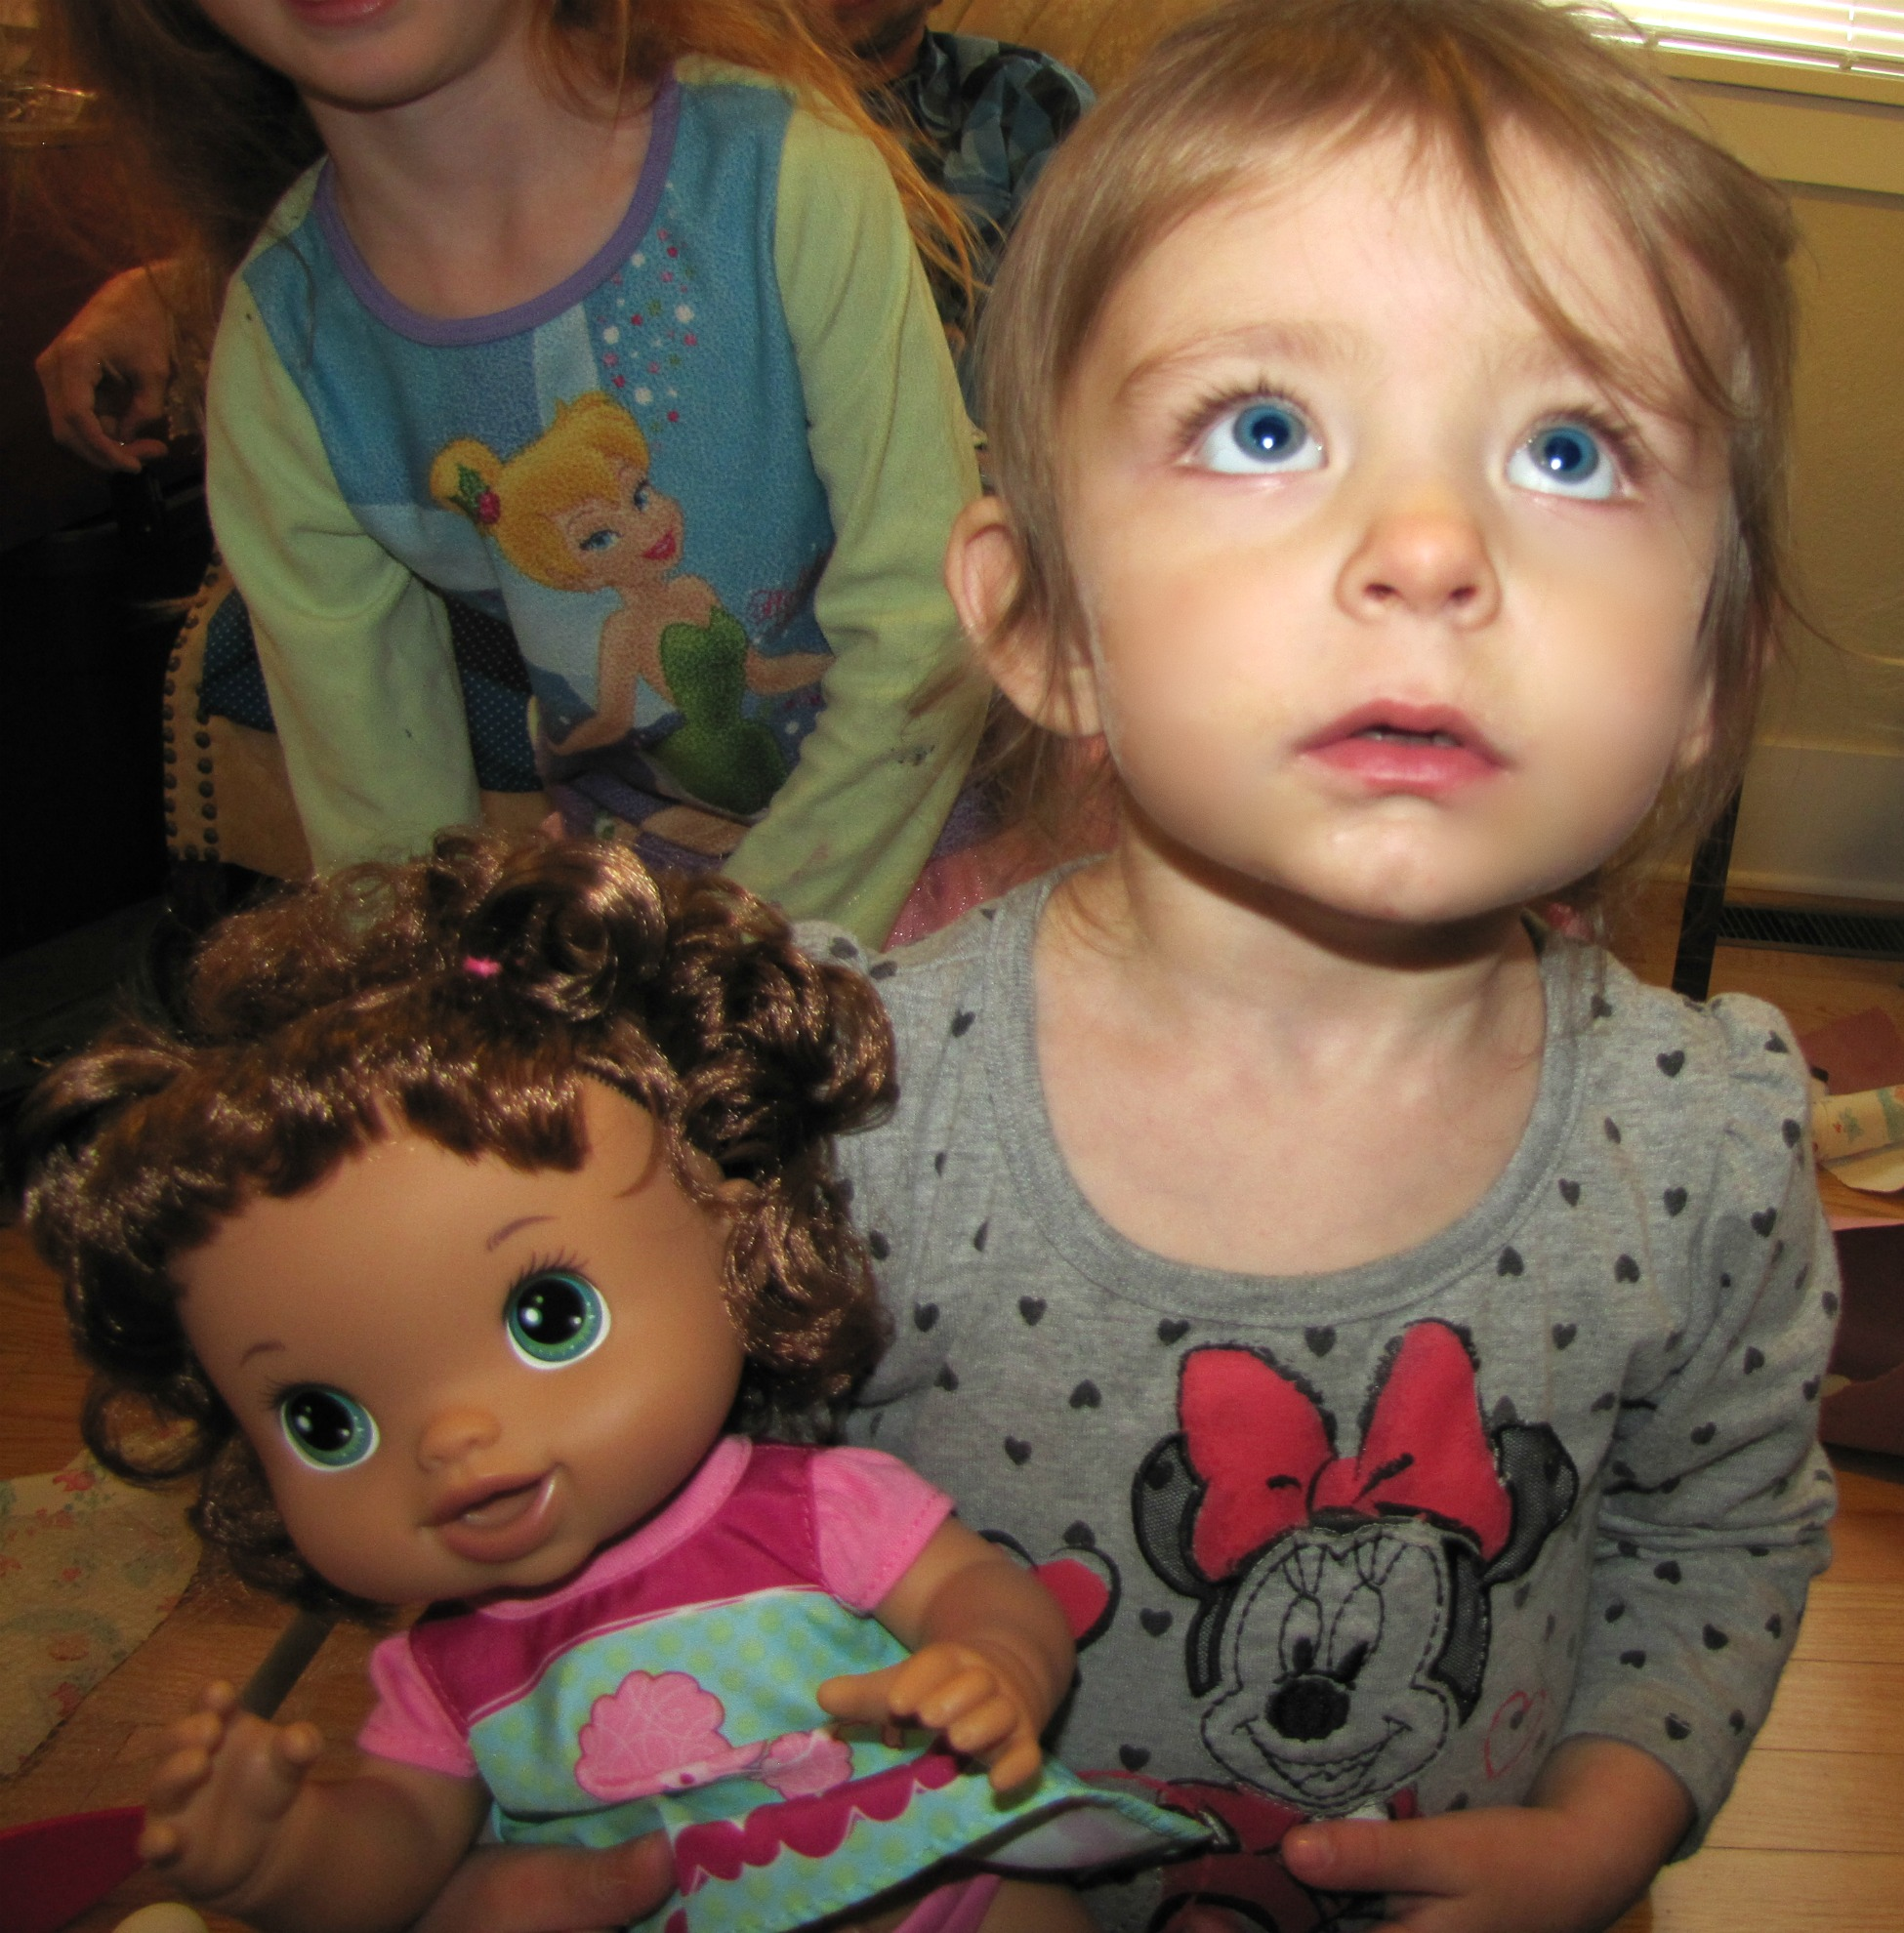 amelie and her doll baby